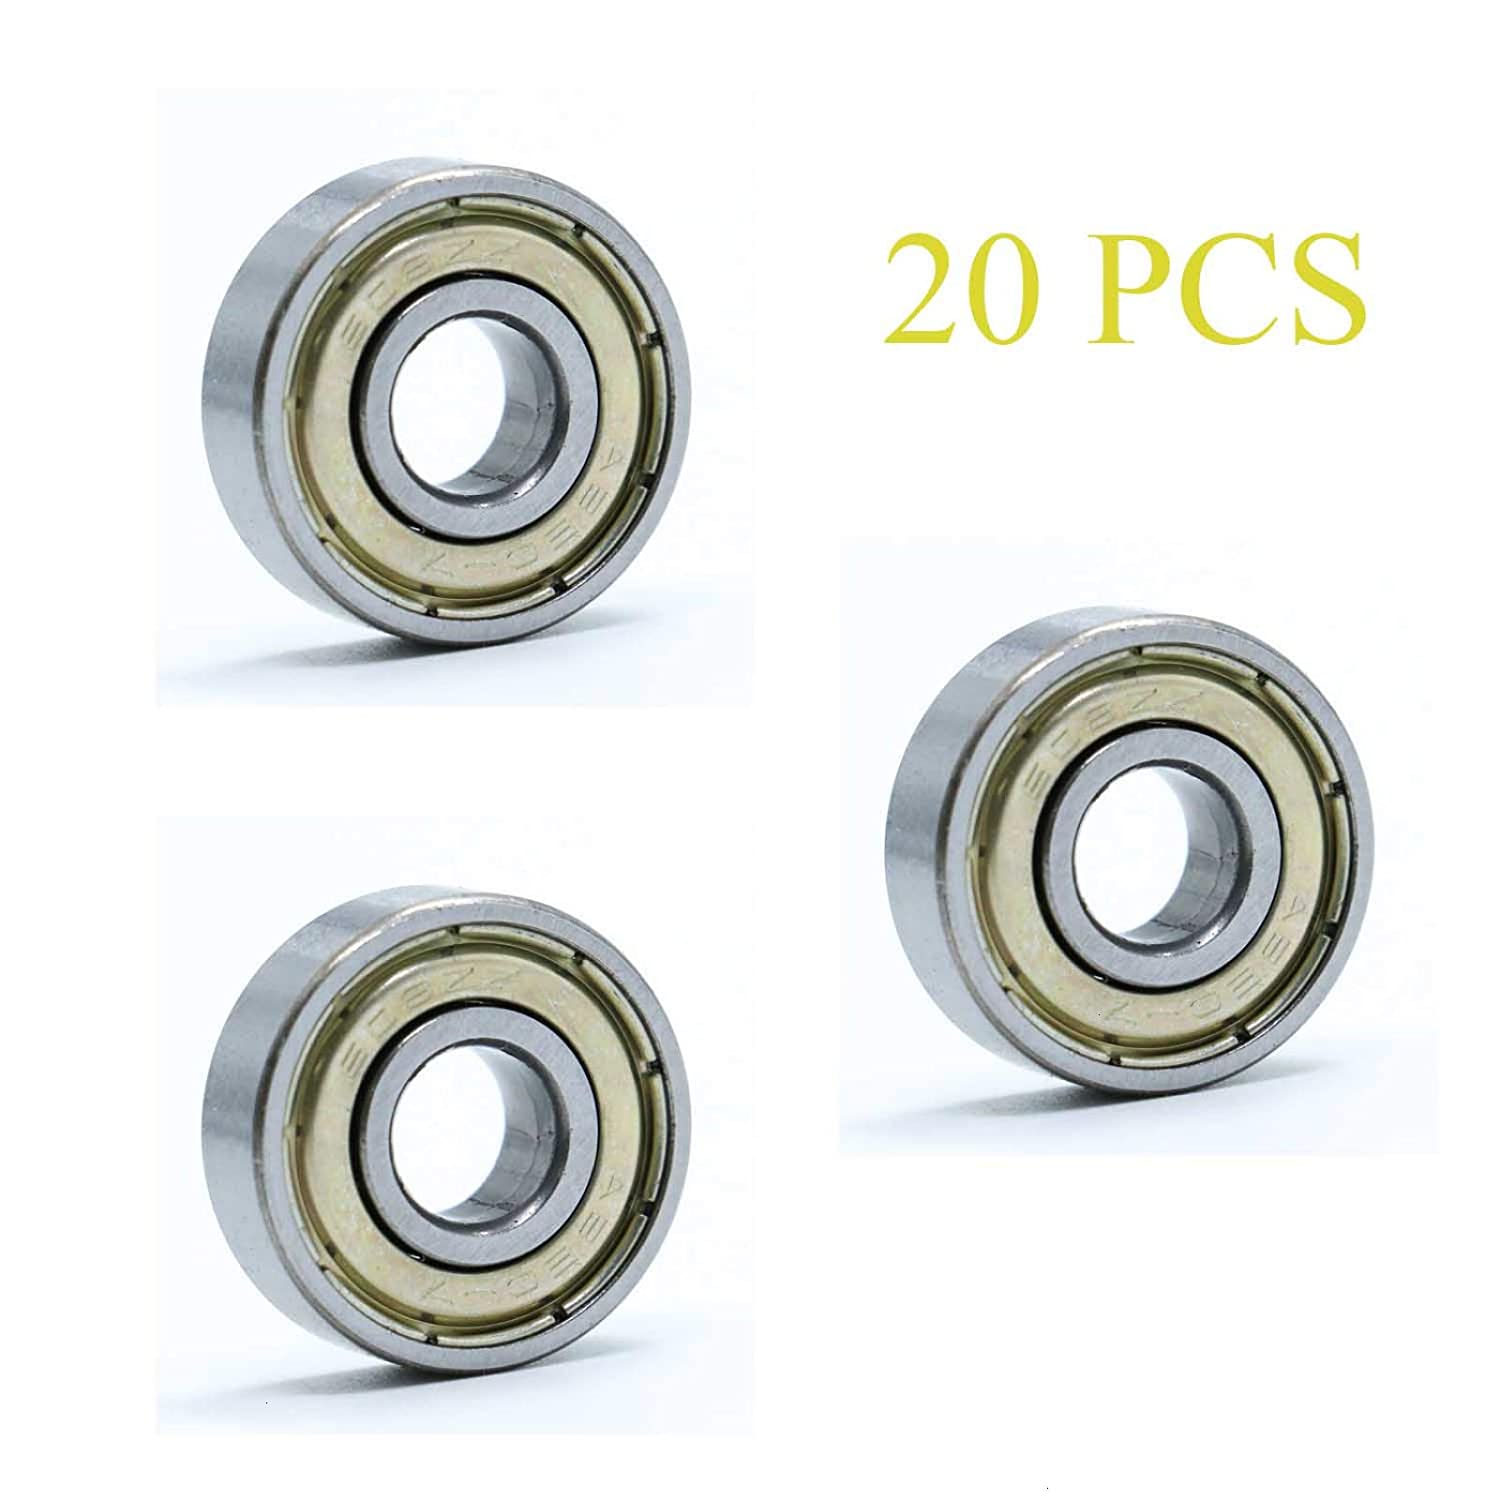 AQUEENLY 20 PCS 608 zz Bearing Precision Deep Groove Ball Bearings for Skateboard Roller Skates Scooters 3D Printer RepRap Wheel 8x22x7mm